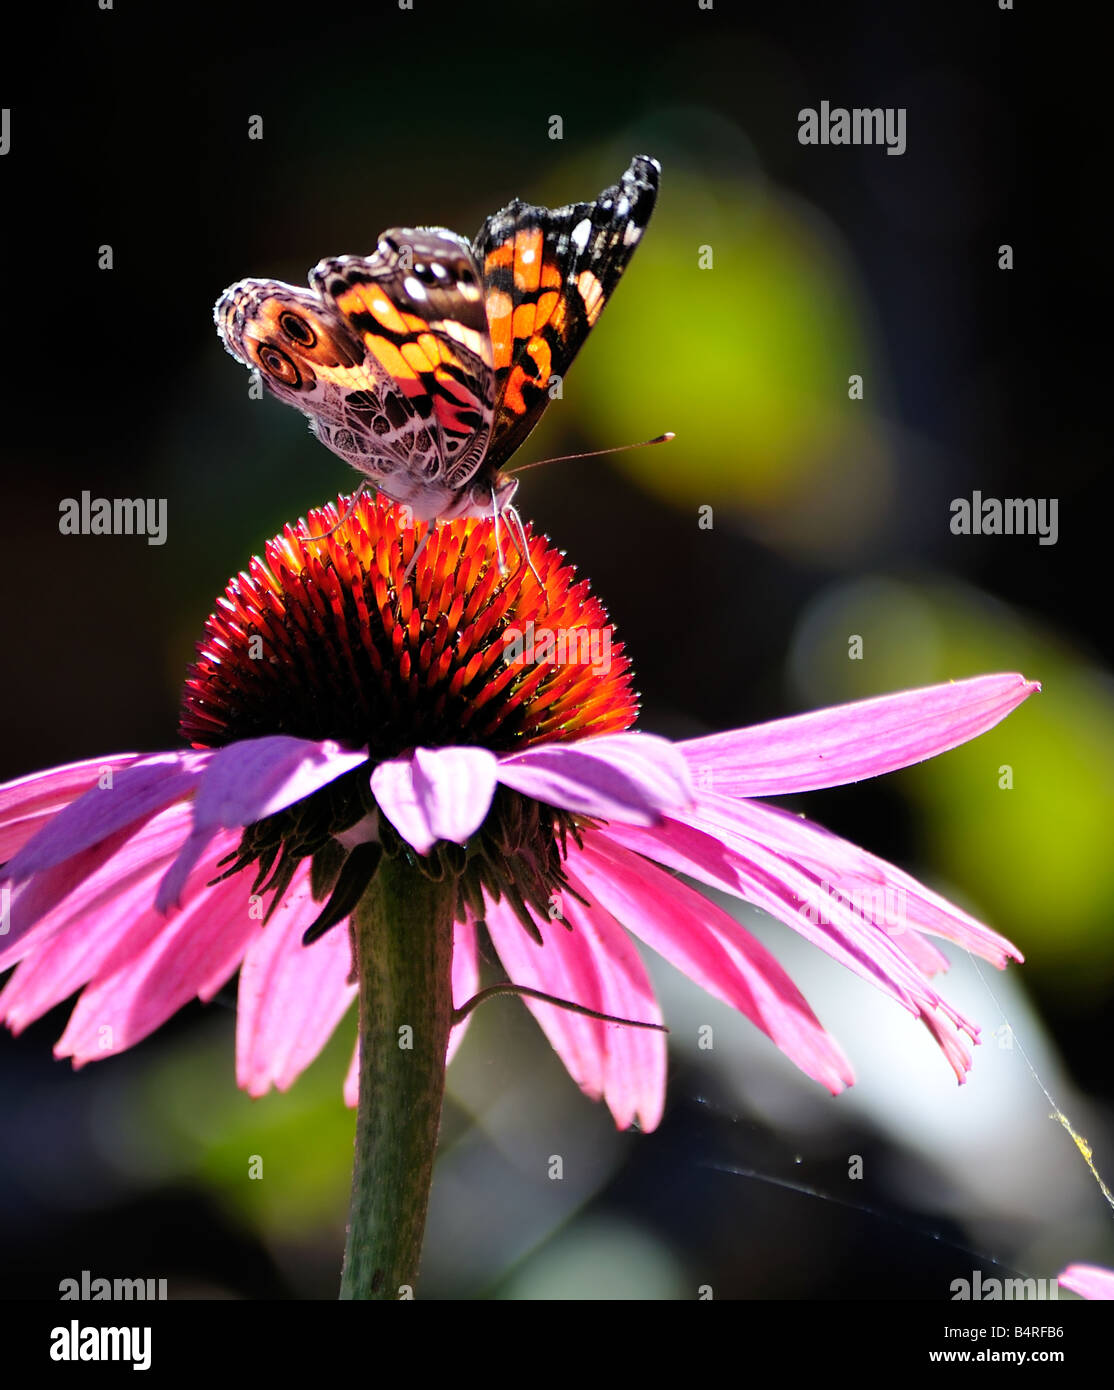 Painted Lady butterfly, Vanessa cardui, on a purple coneflower, Echinacea. Oklahoma, USA. - Stock Image